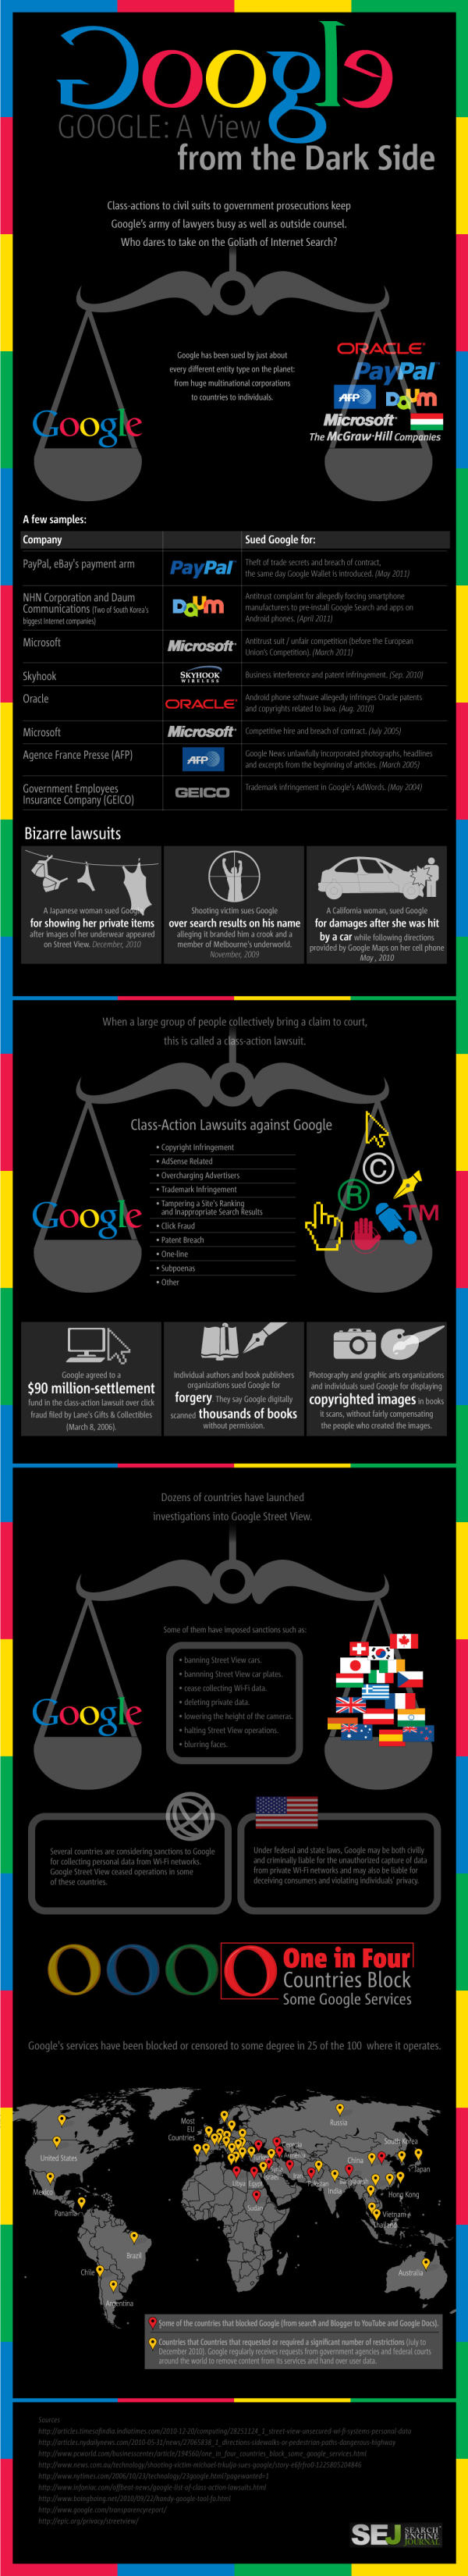 google legal battles infographics consultants edtx texas patent